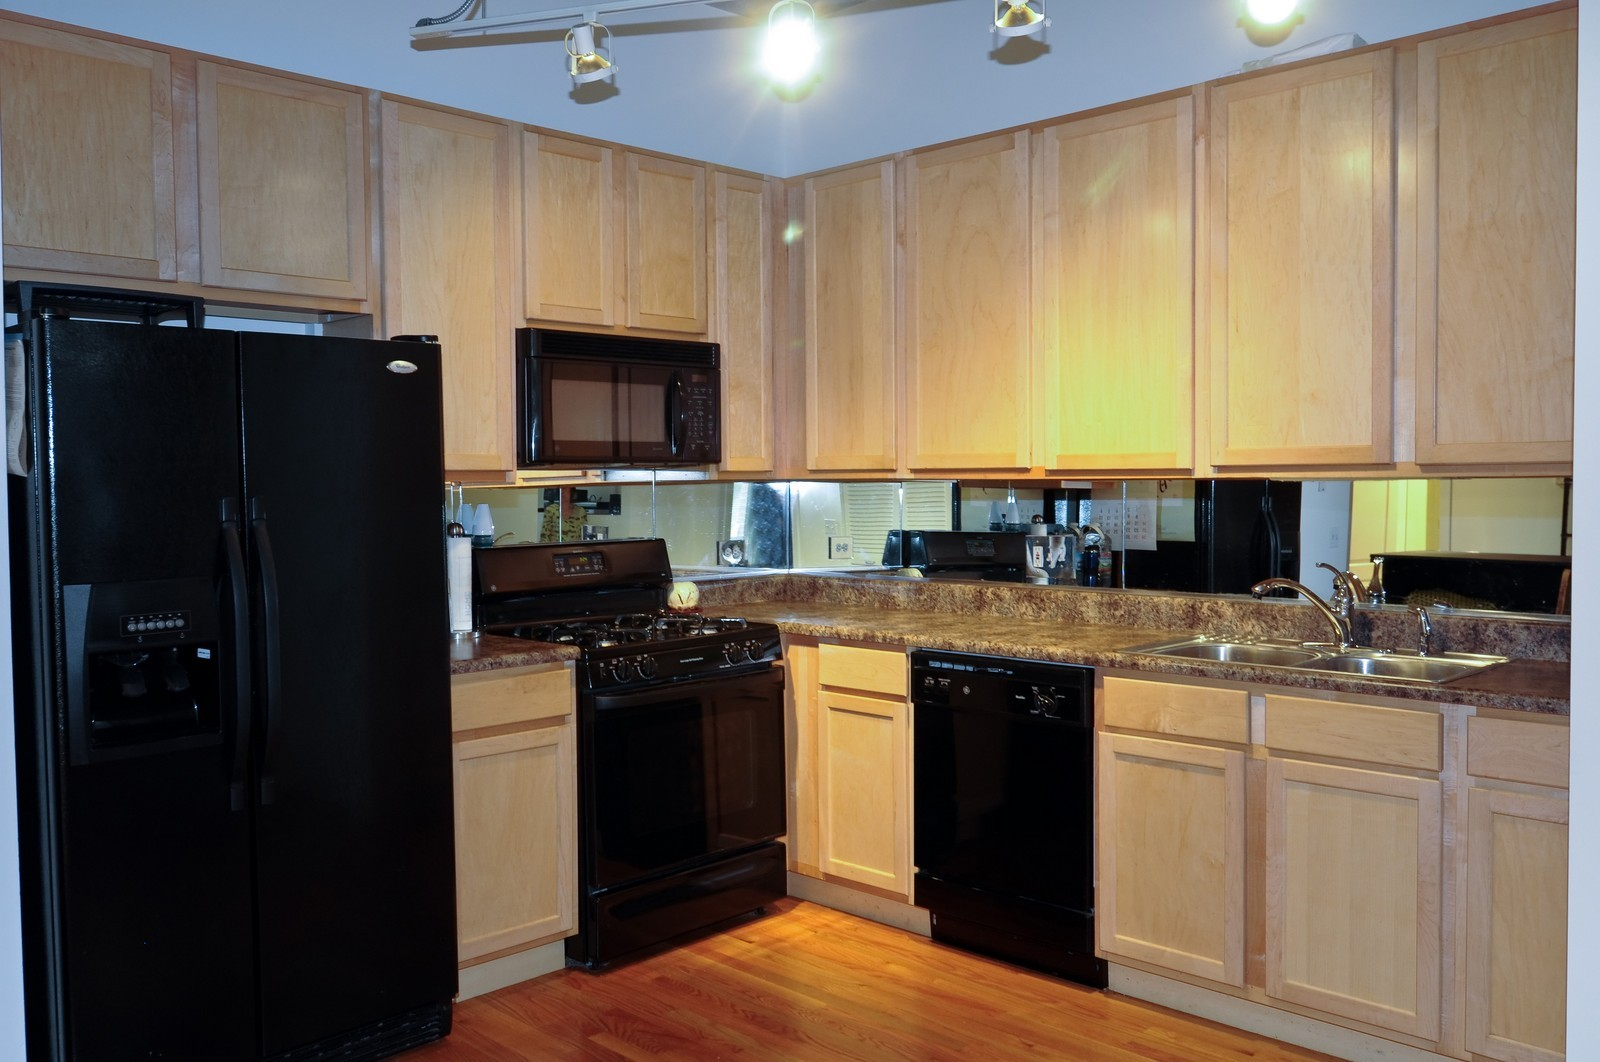 Real Estate Photography - 933 W. Van Buren, 619, Chicago, IL, 60607 - Kitchen